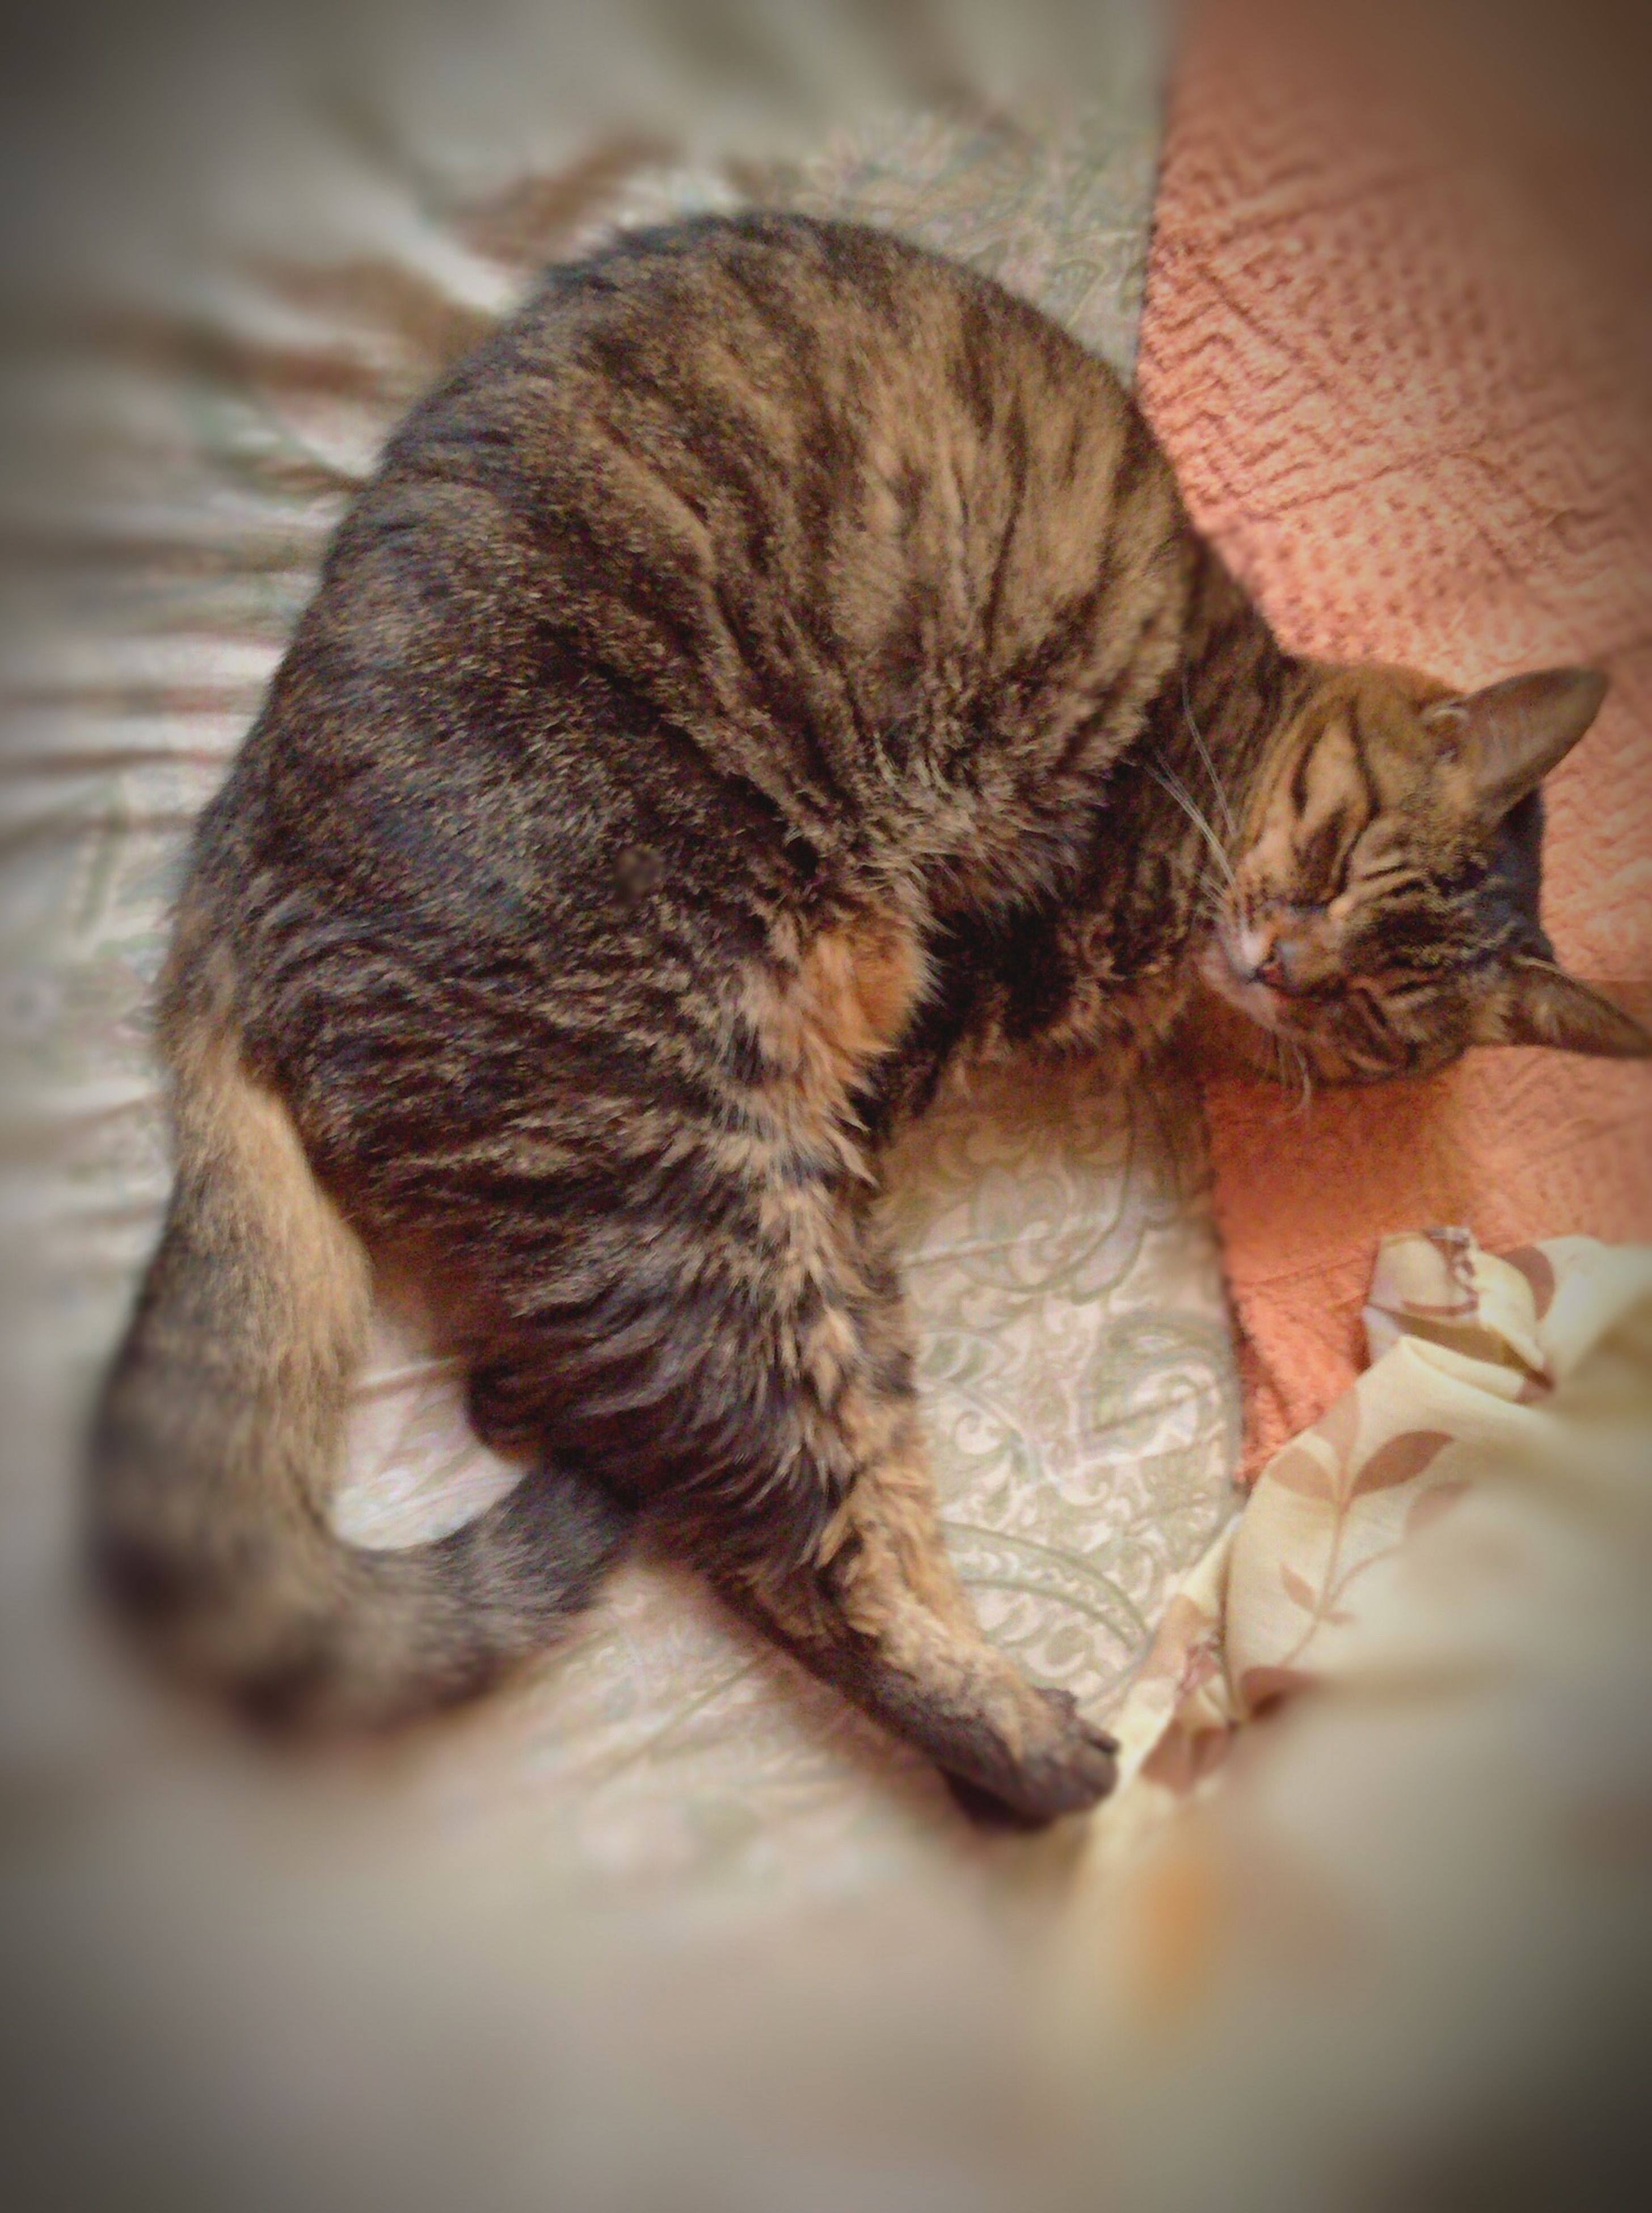 animal themes, pets, domestic animals, one animal, domestic cat, indoors, mammal, cat, feline, relaxation, sleeping, resting, lying down, whisker, bed, high angle view, eyes closed, close-up, home interior, selective focus